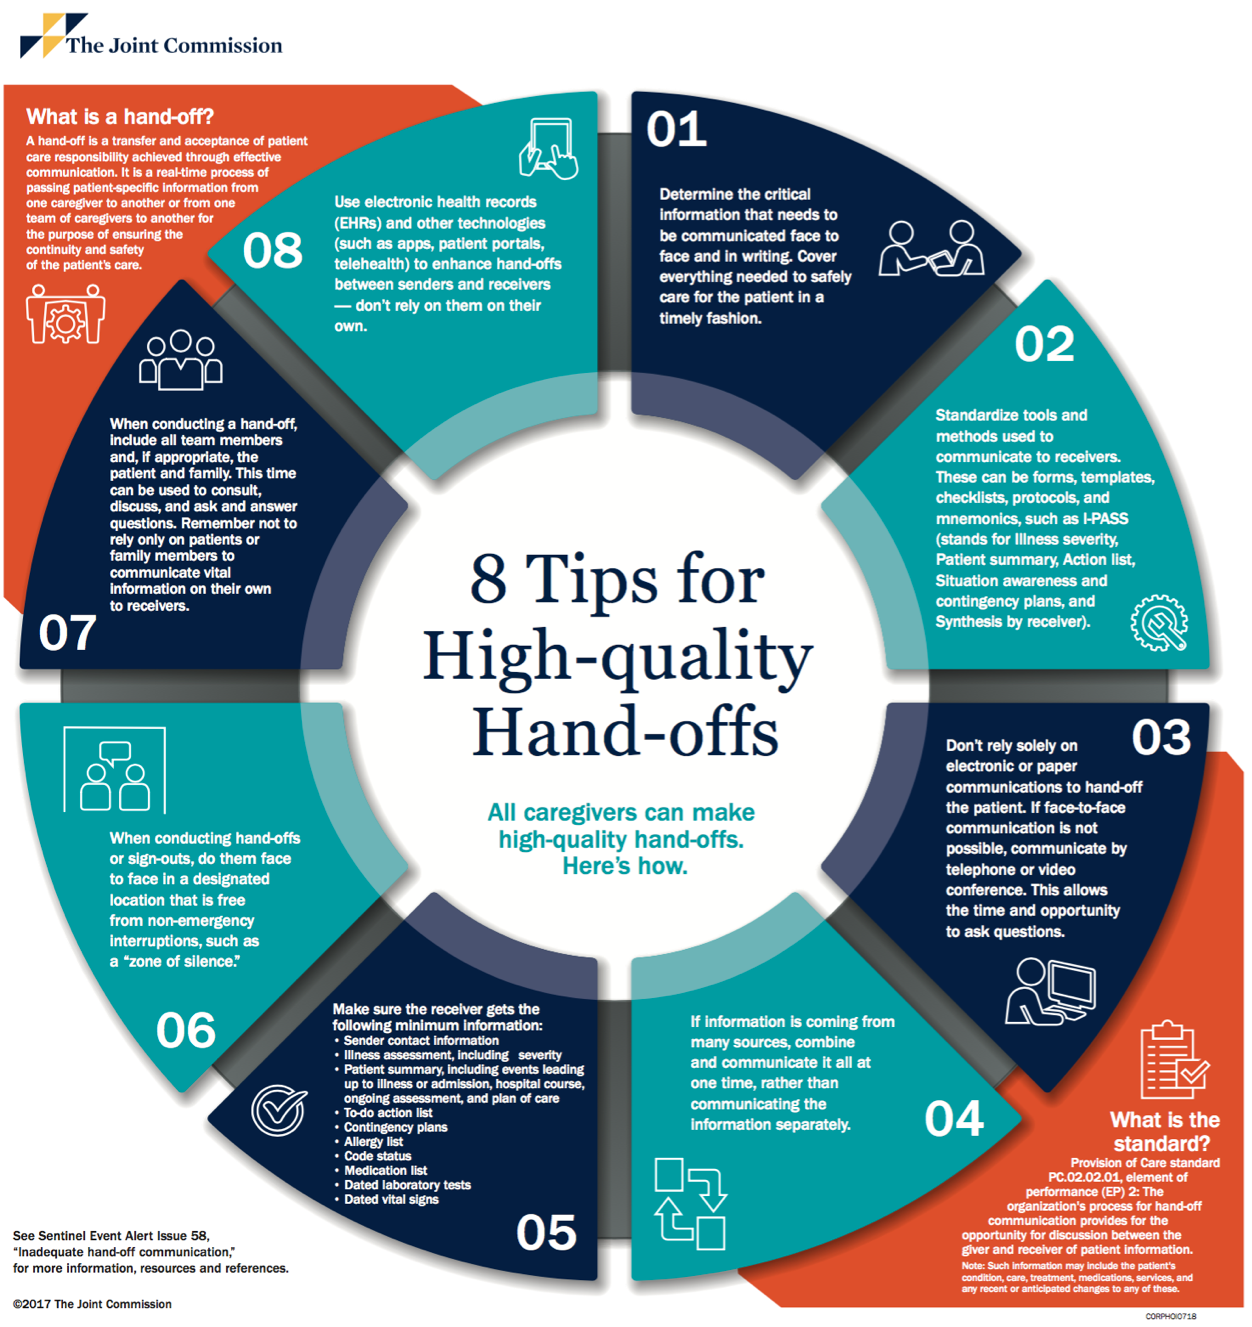 <b>8 tips for High-quality Hand-offs</b>Source: The Joint Commission. (2017). Sentinel Event Alert 58: Inadequate hand-off communication. https://www.jointcommission.org/resources/patient-safety-topics/sentinel-event/sentinel-event-alert-newsletters/sentinel-event-alert-58-inadequate-hand-off-communication/